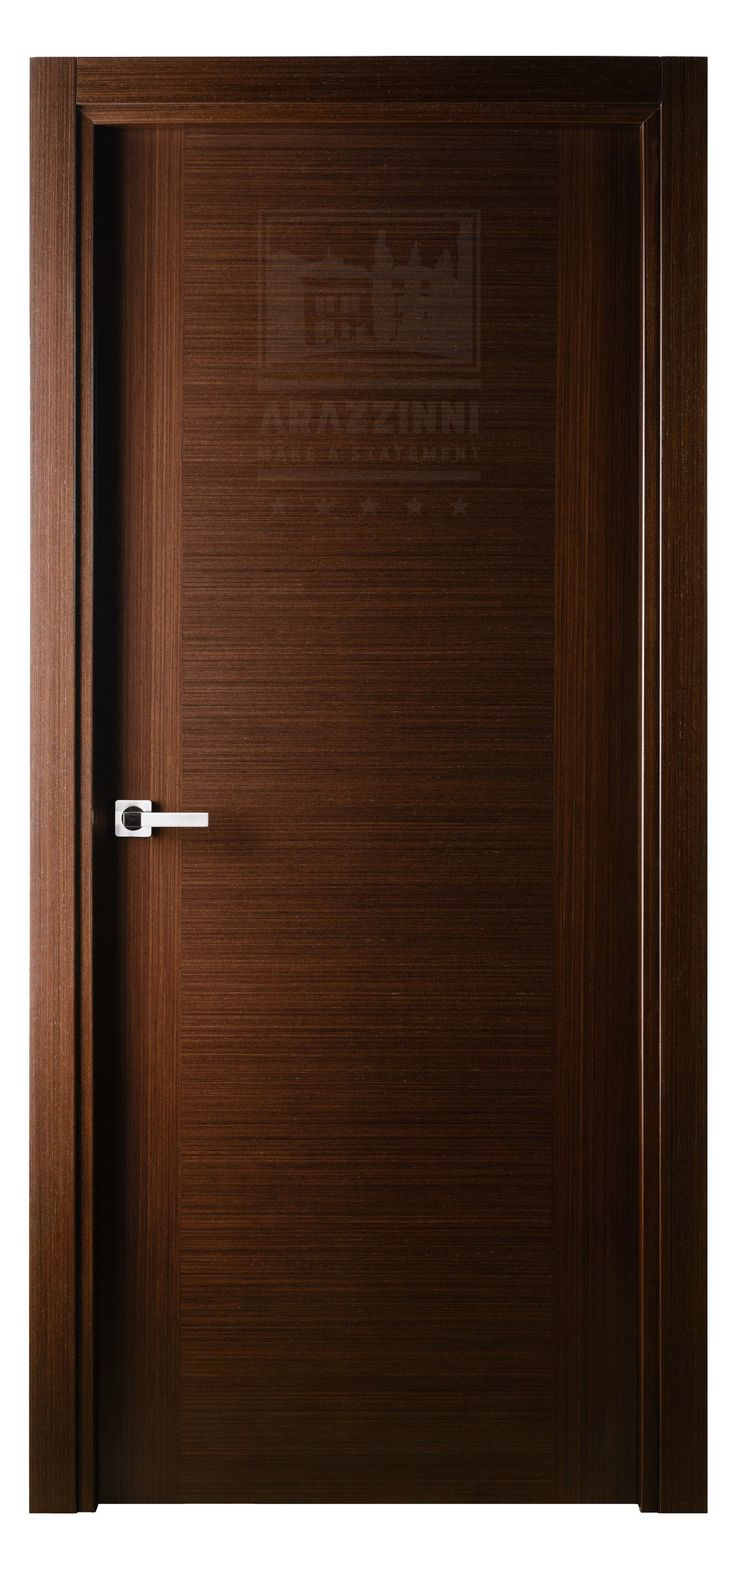 51 Best Exotic Wood Veneer Doors Images On Pinterest